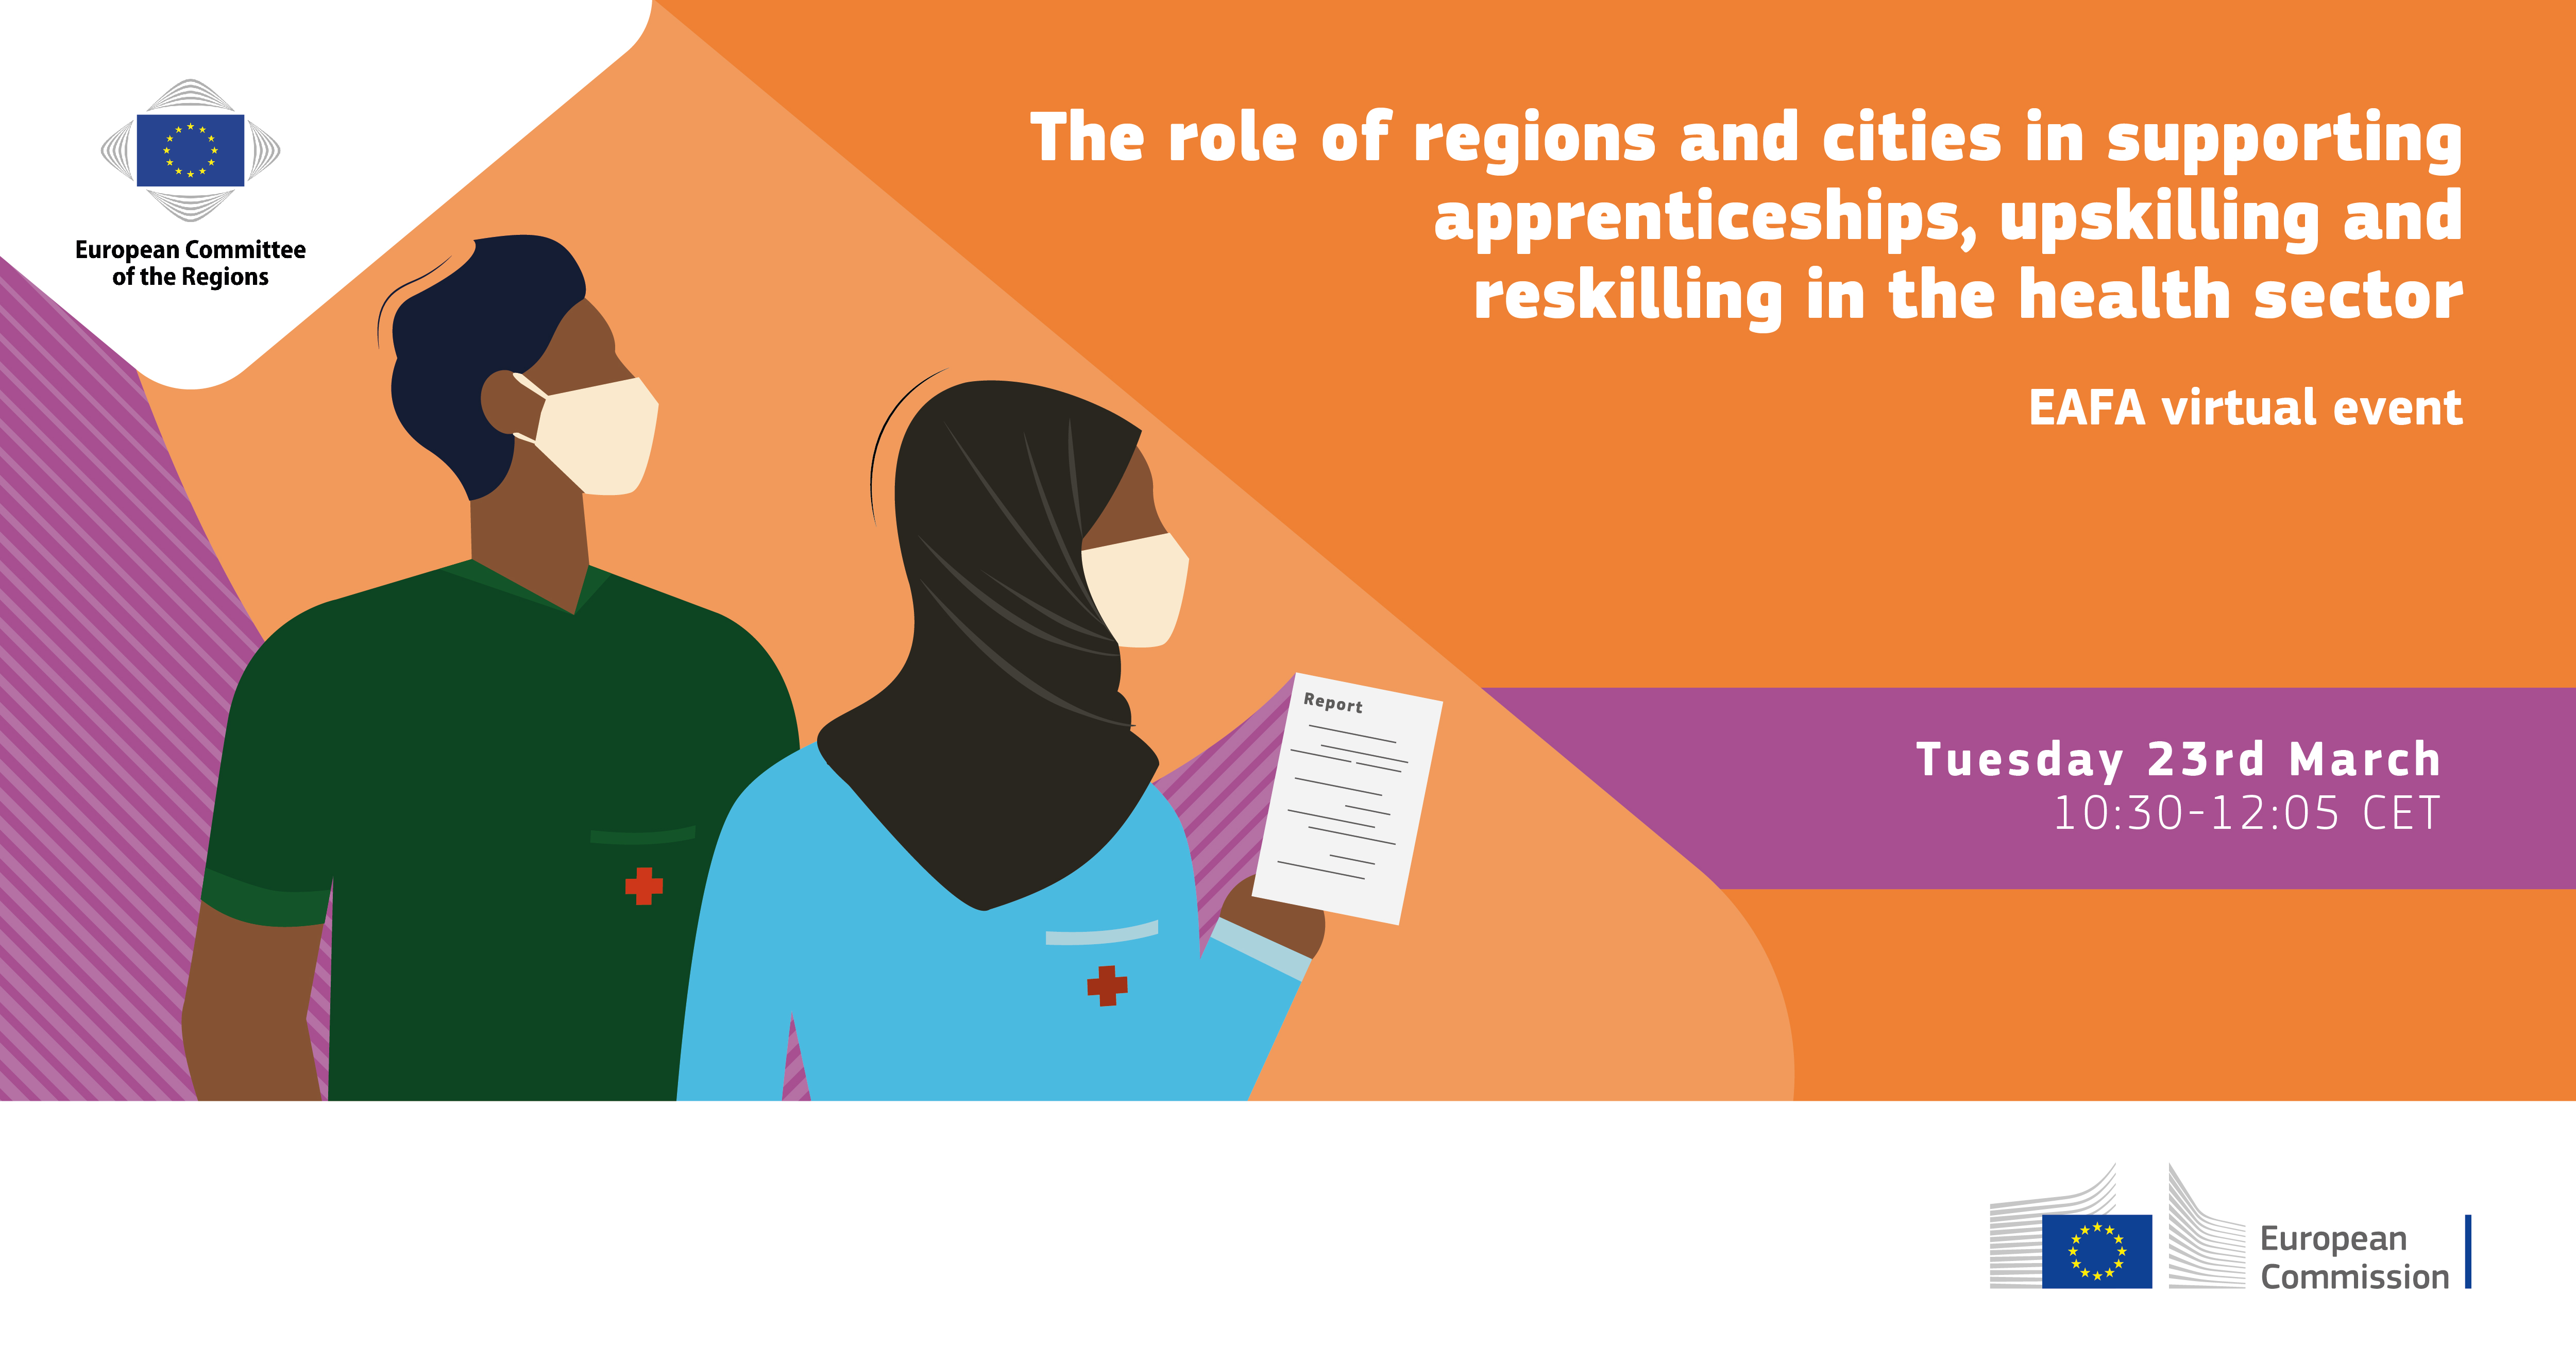 The role of regions and cities in supporting apprenticeships: upskilling and reskilling in the health sector